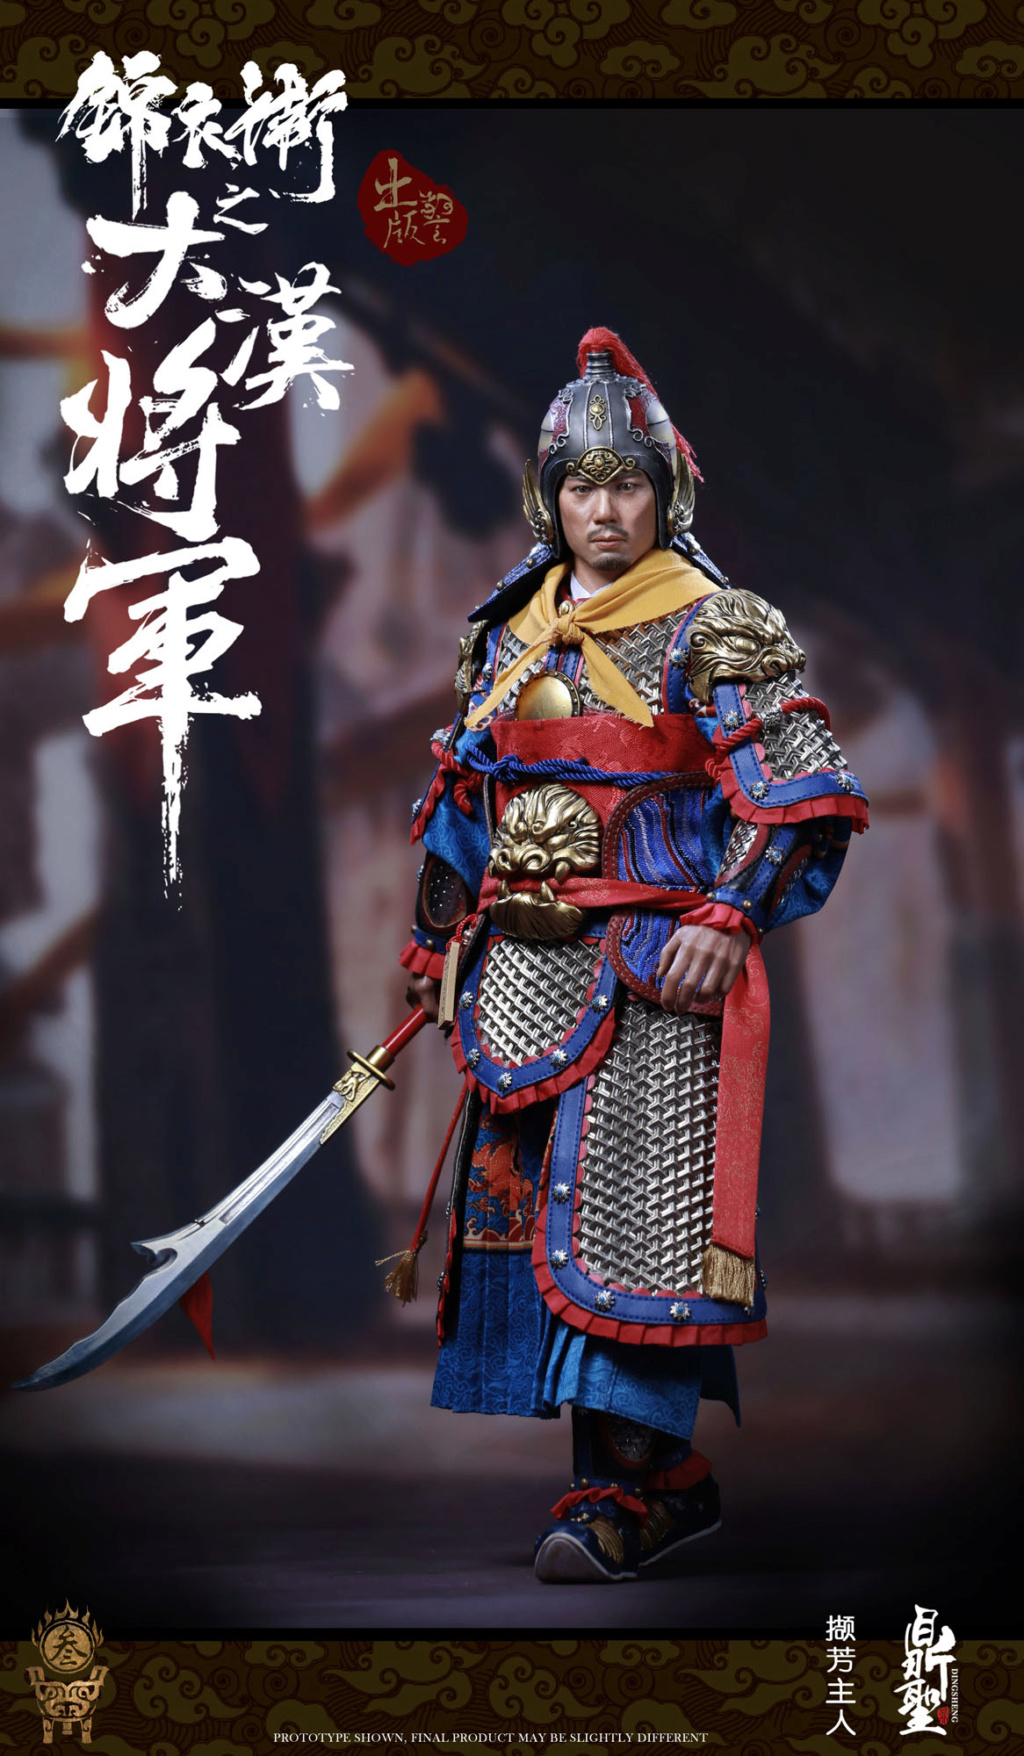 military - NEW PRODUCT: Ding Sheng Mo to play: 1/6 Out of the police into the big Han general (pure copper handmade mountain Wenjia) - gold armor version / silver armor version / dragon screen suit 18340810